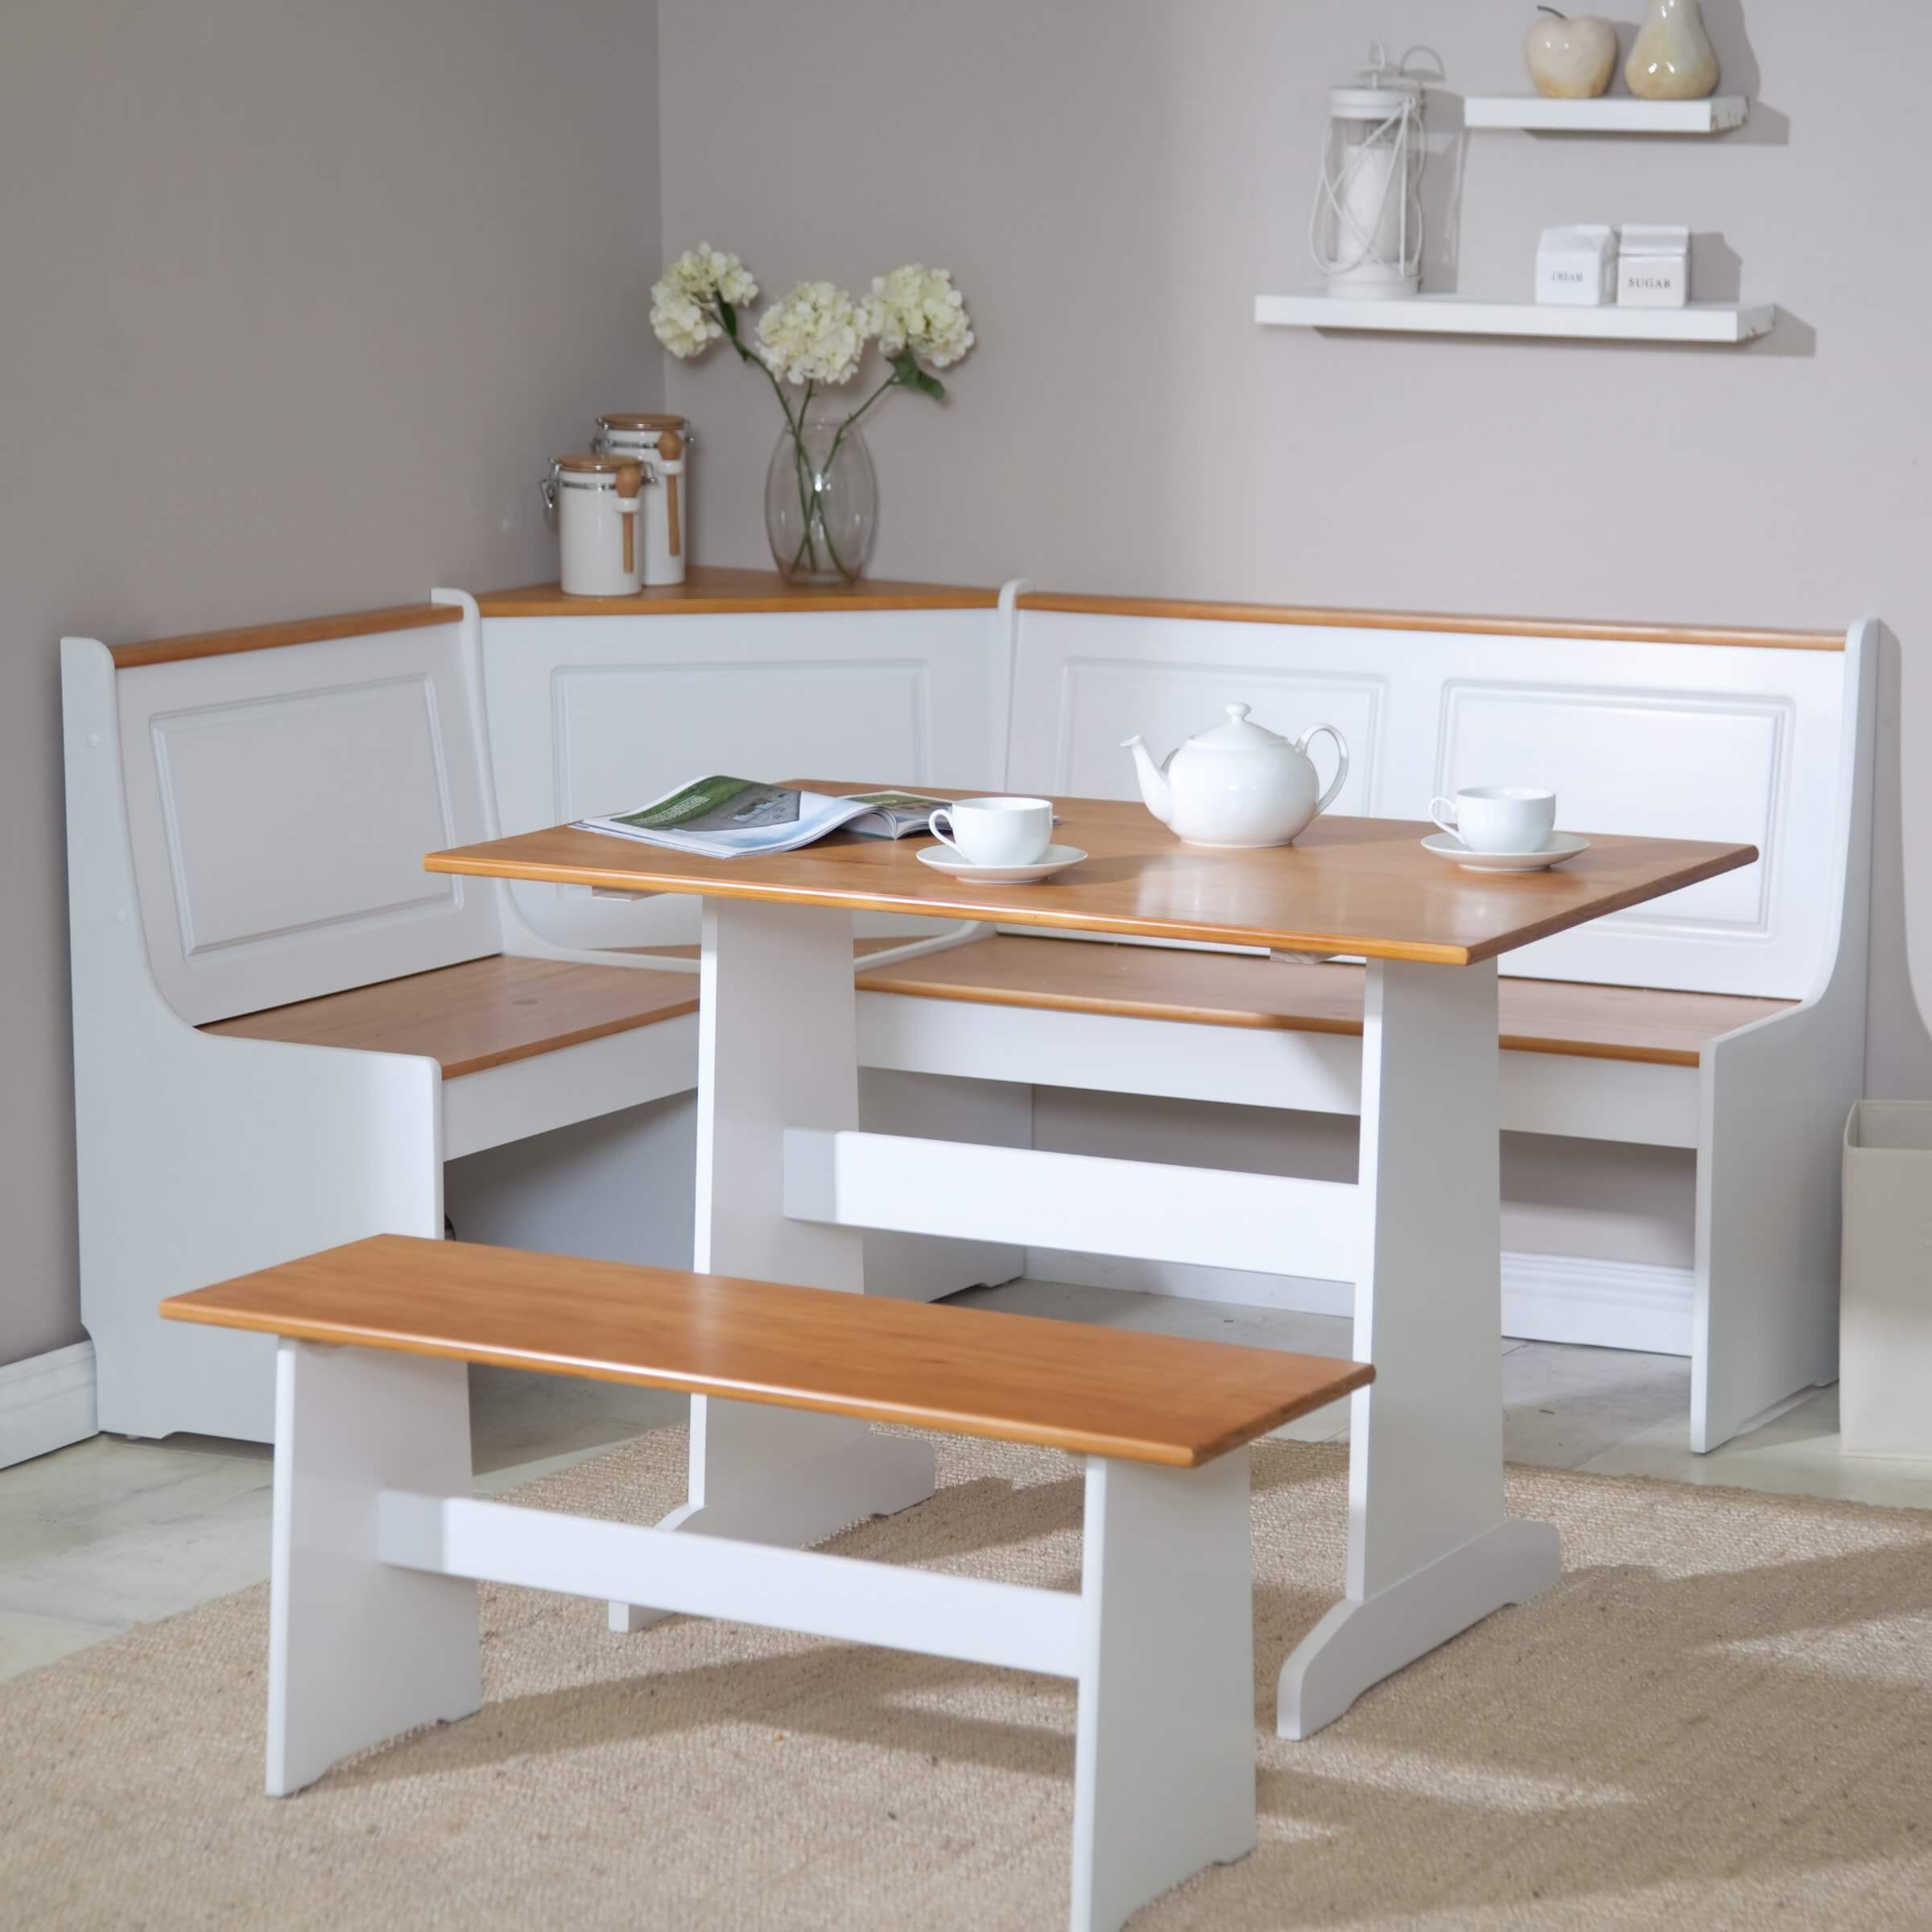 breakfast tables vermont table belg belgian brkft frch kitchen dining room magnolia home